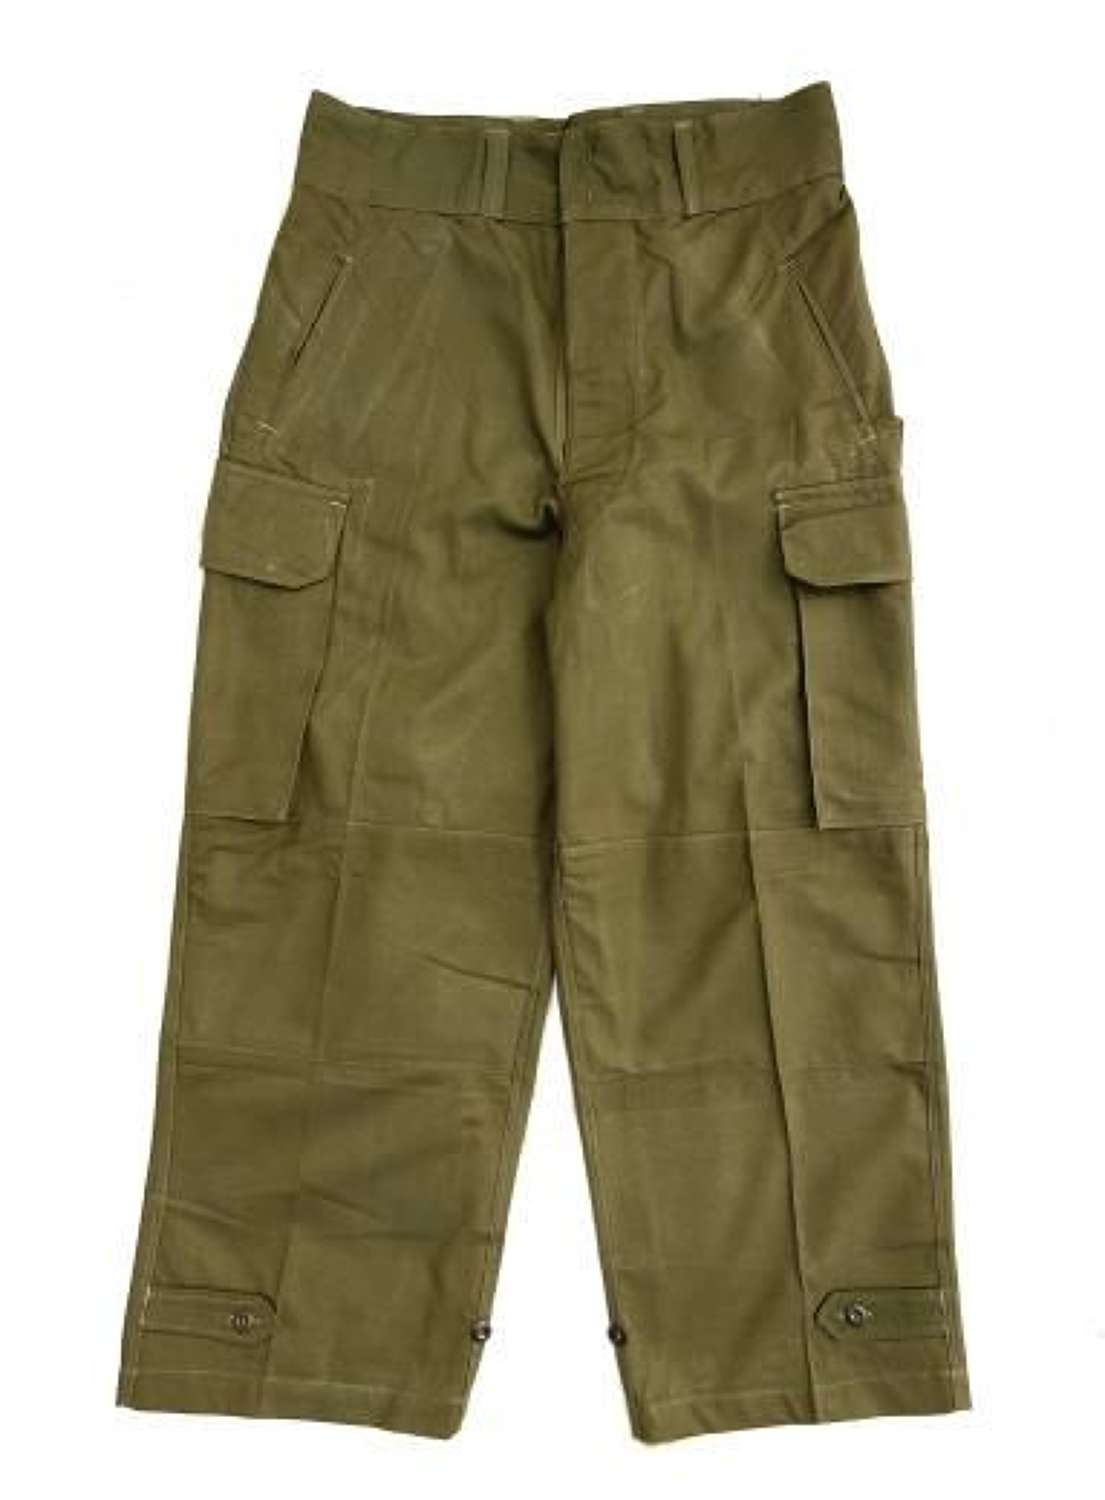 Original French Army M1947 Trousers (1)